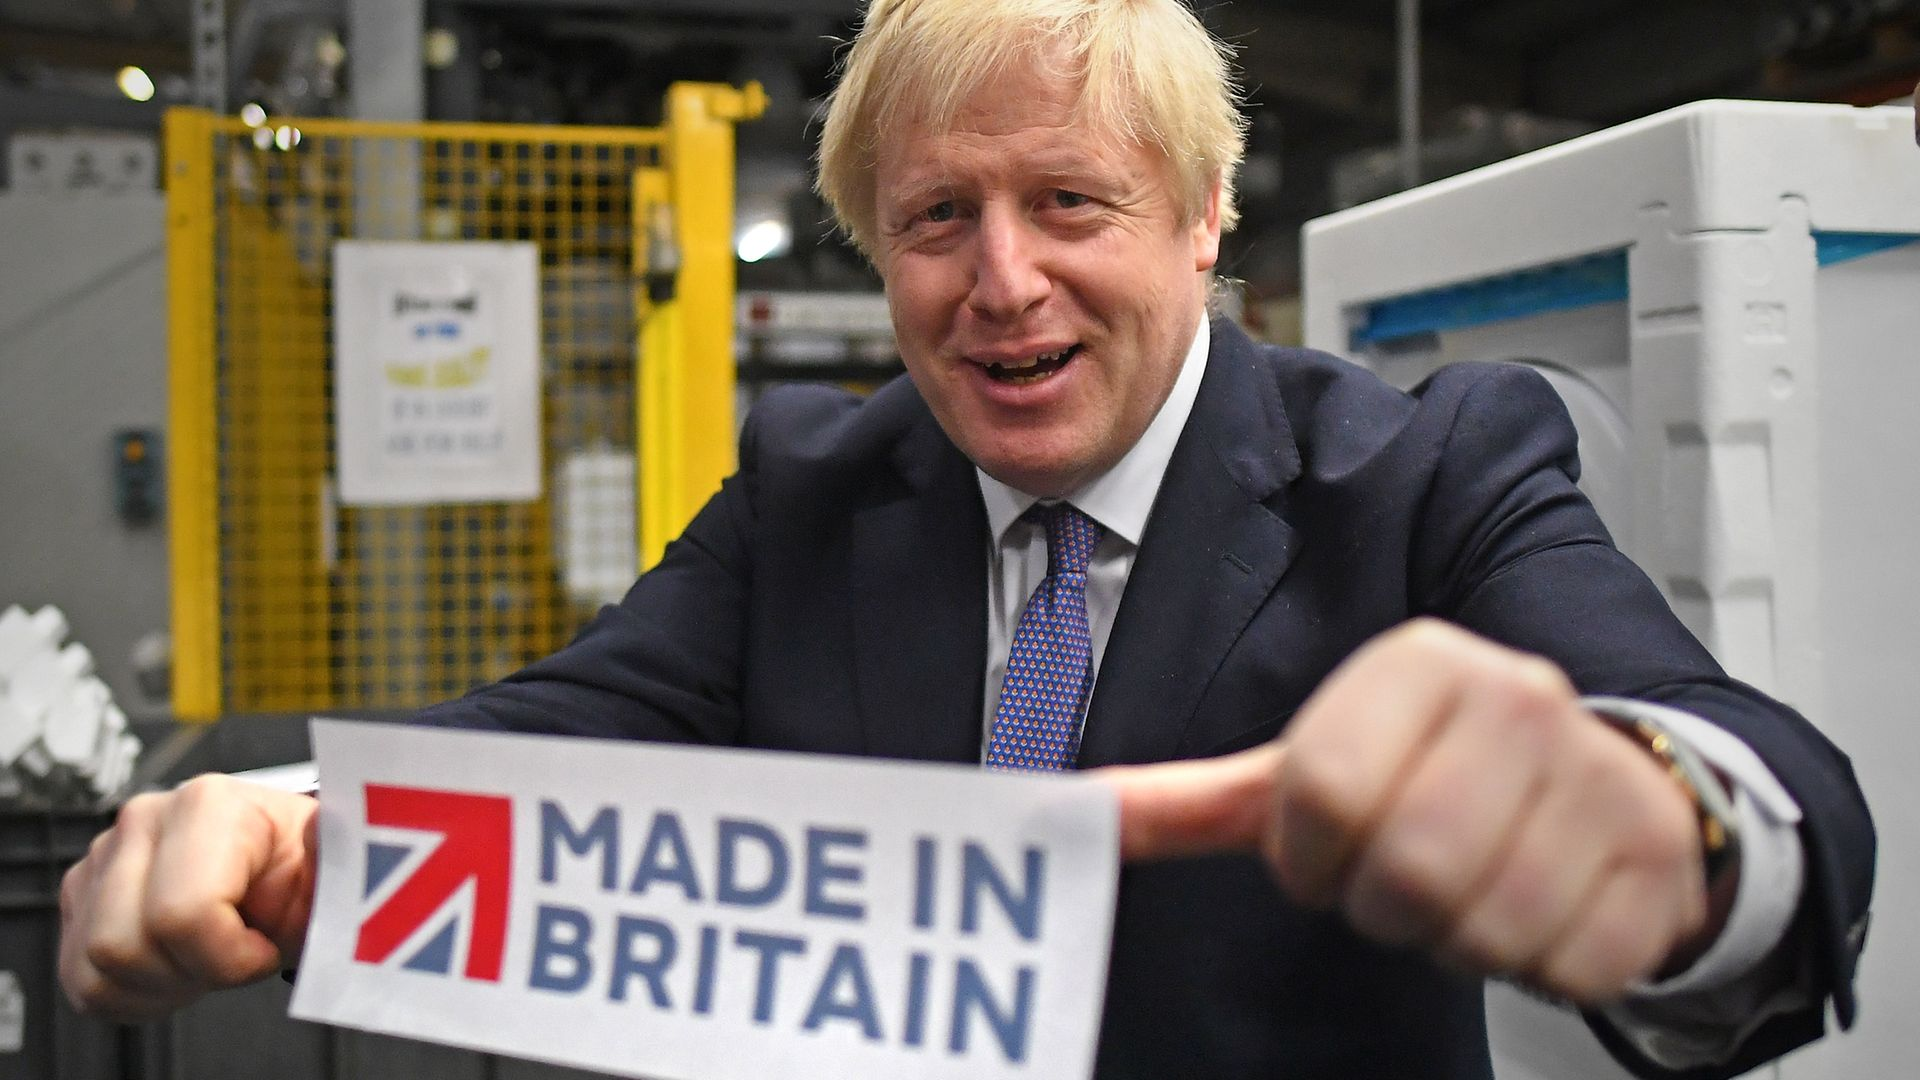 Prime Minister Boris Johnson during a visit to washing machine manufacturer Ebac in Newton Aycliffe while election campaigning in the North East, ahead of the General Election. - Credit: PA